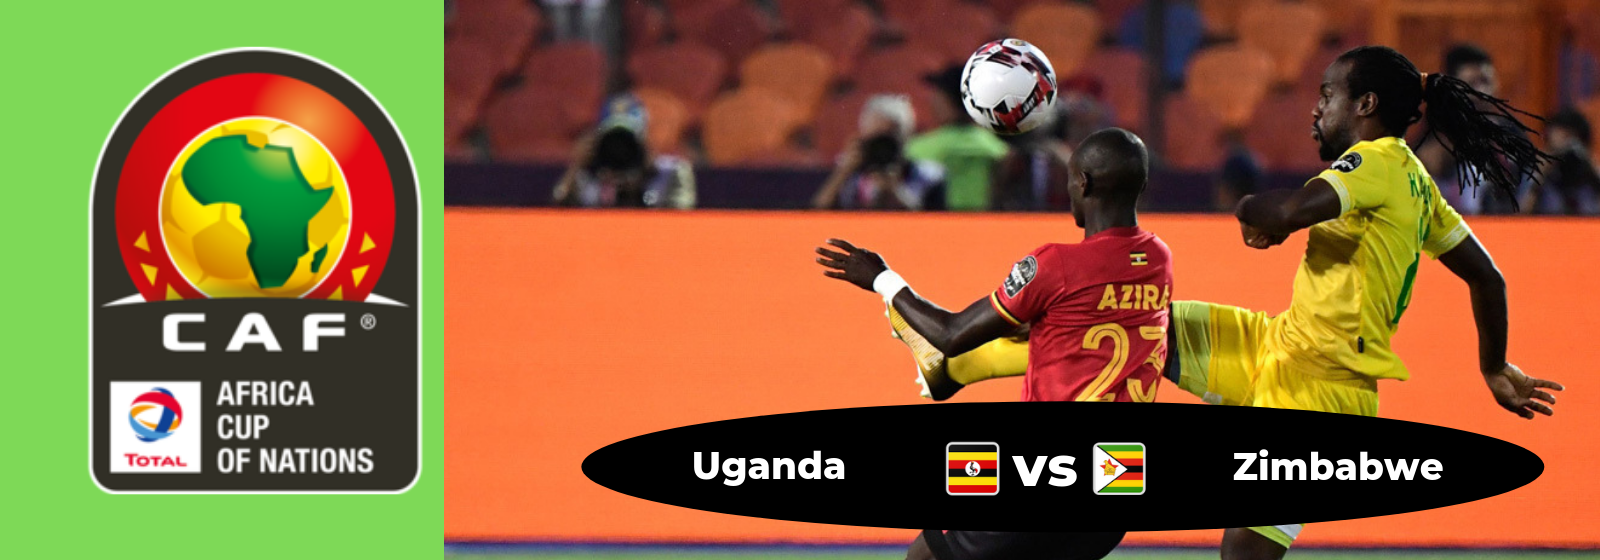 Africa Cup Of Nations Uganda Vs. Zimbabwe Asian Connect